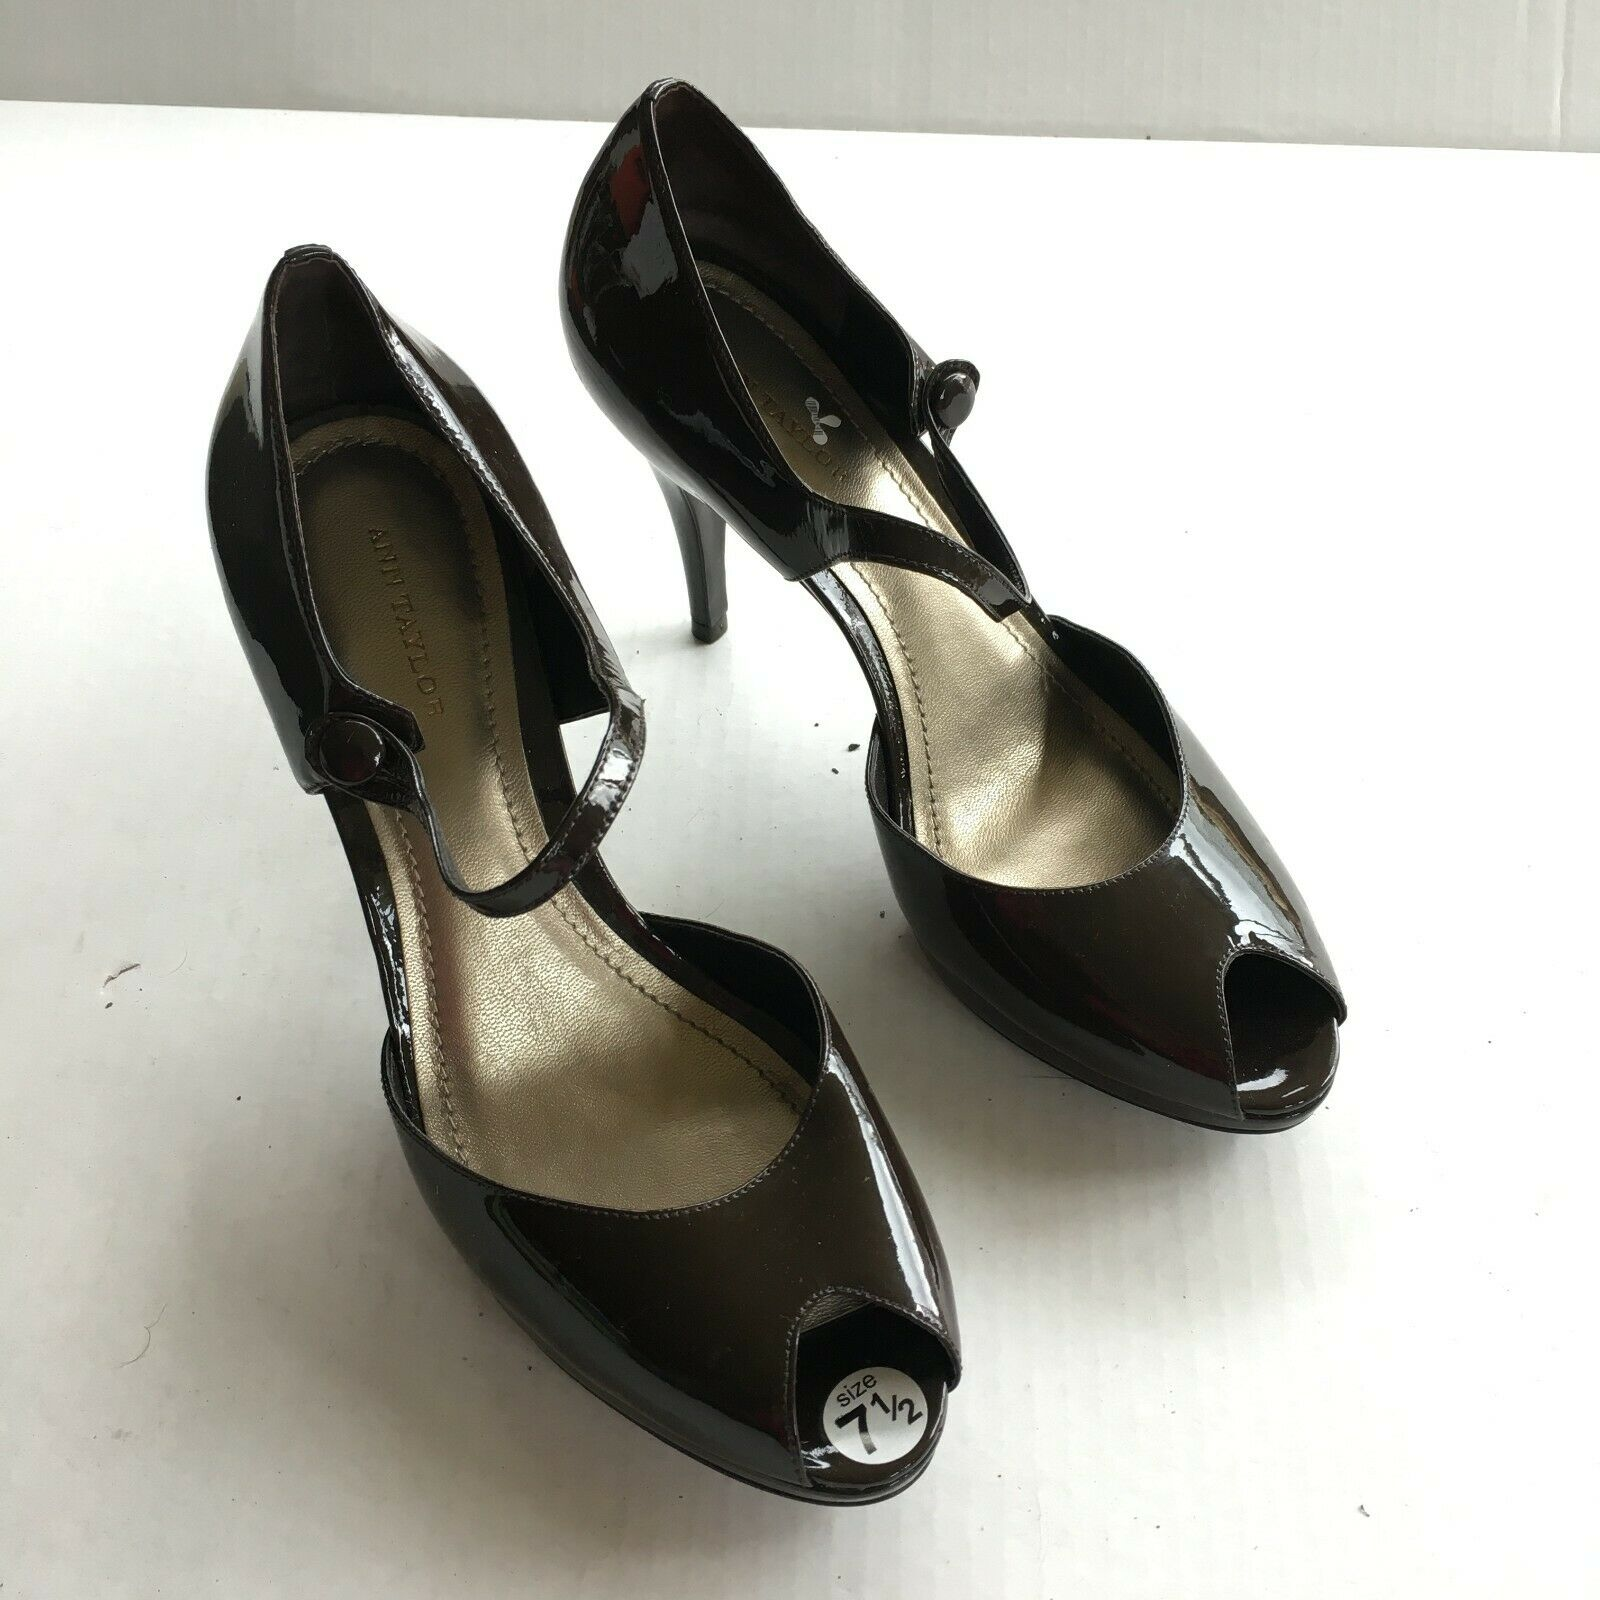 NEW Ann Taylor Brown Patent leather pumps 7.5M Shoes Open toe Mary Jane buckle